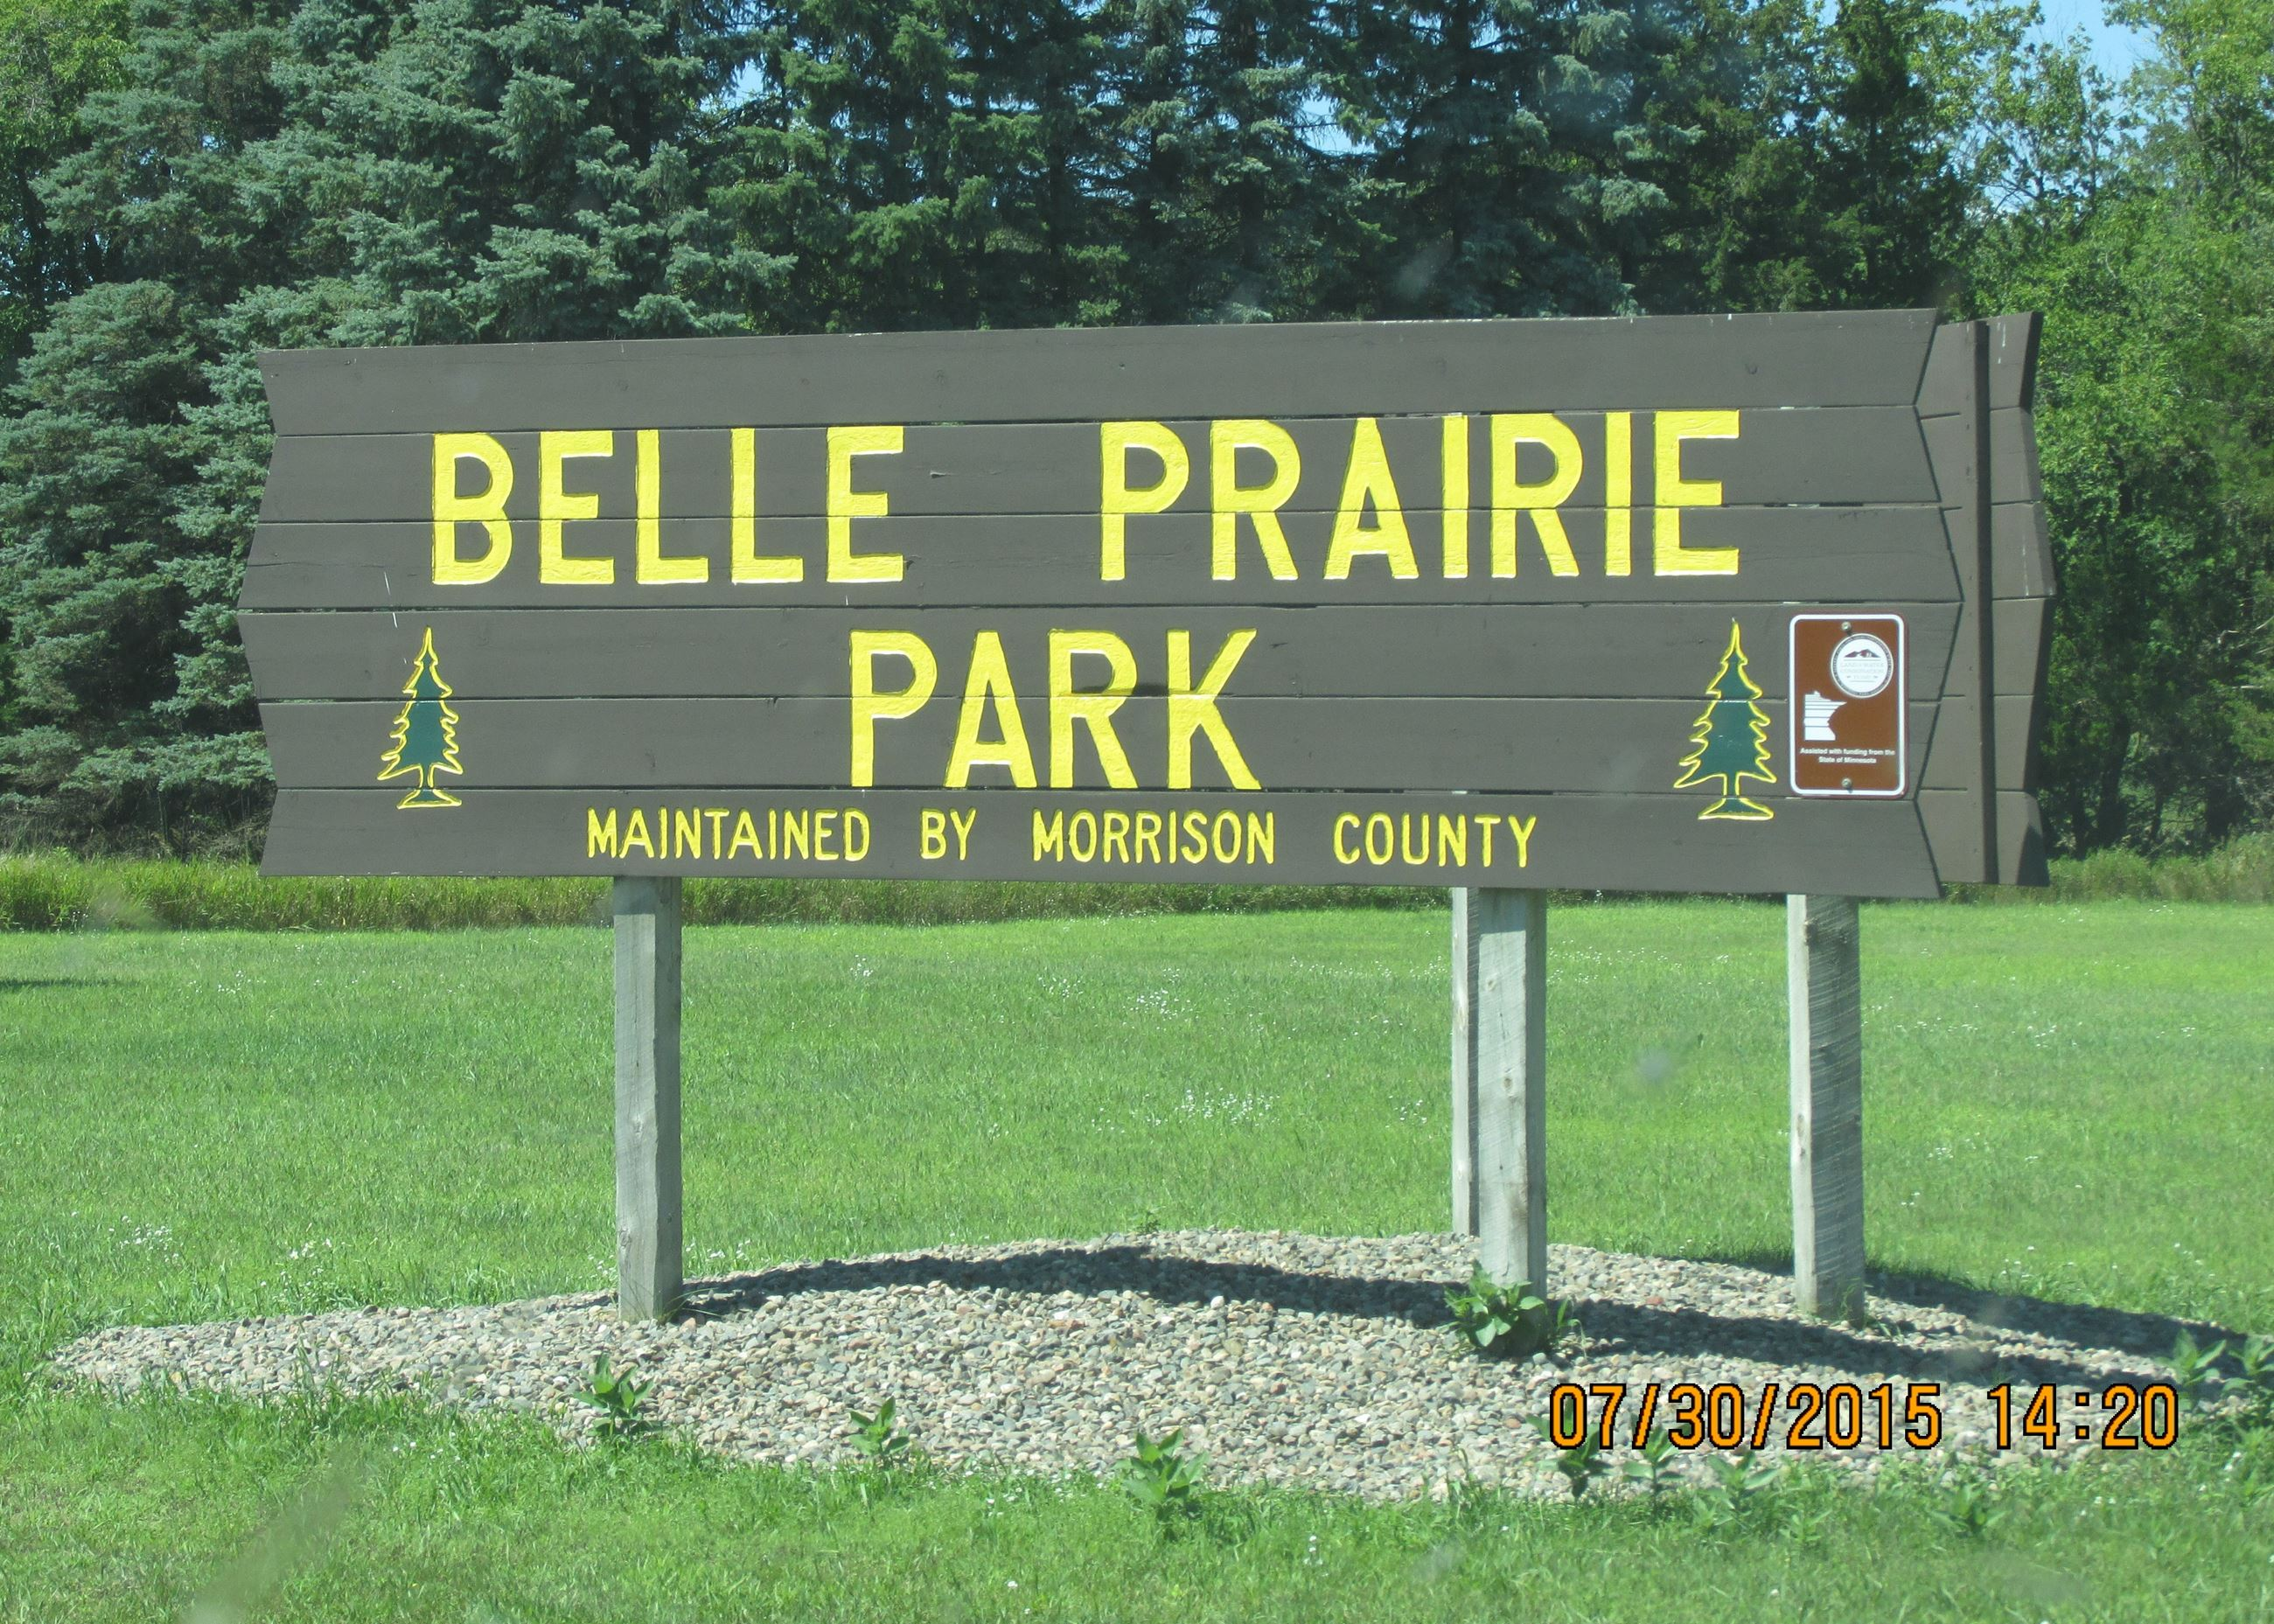 Belle Prairie Park Entrance Sign